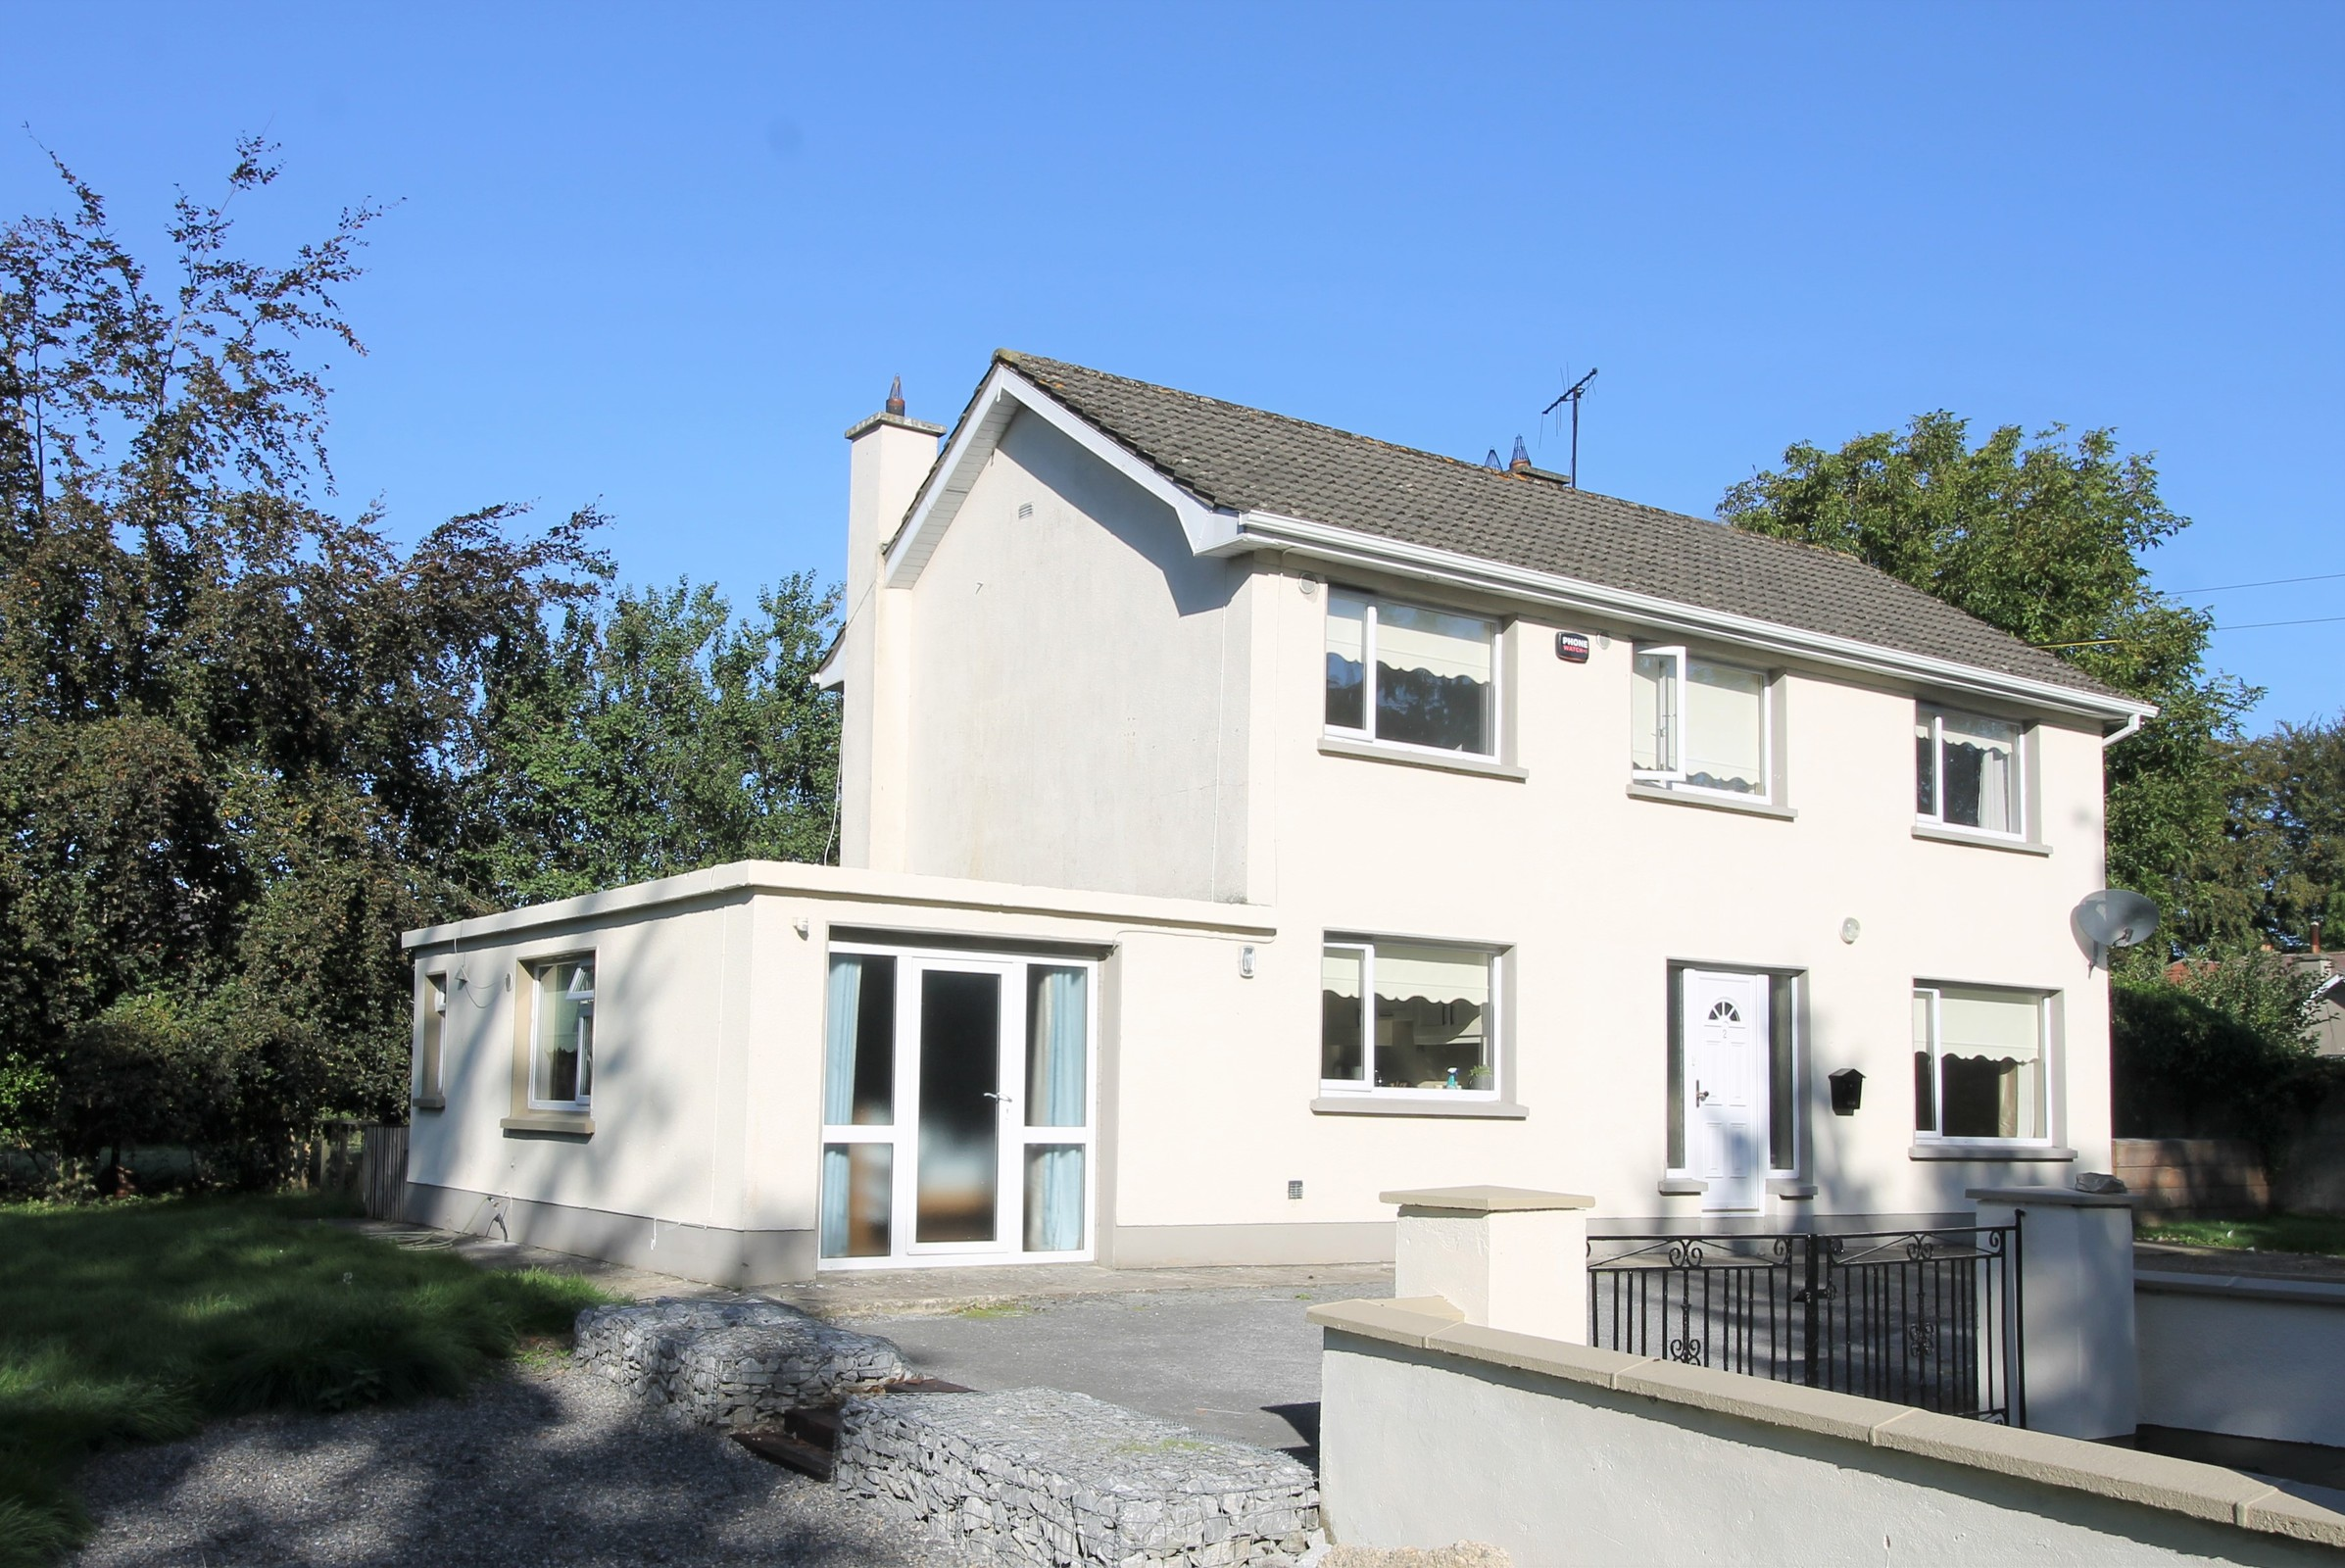 2 Mill Road, Thurles, Co. Tipperary